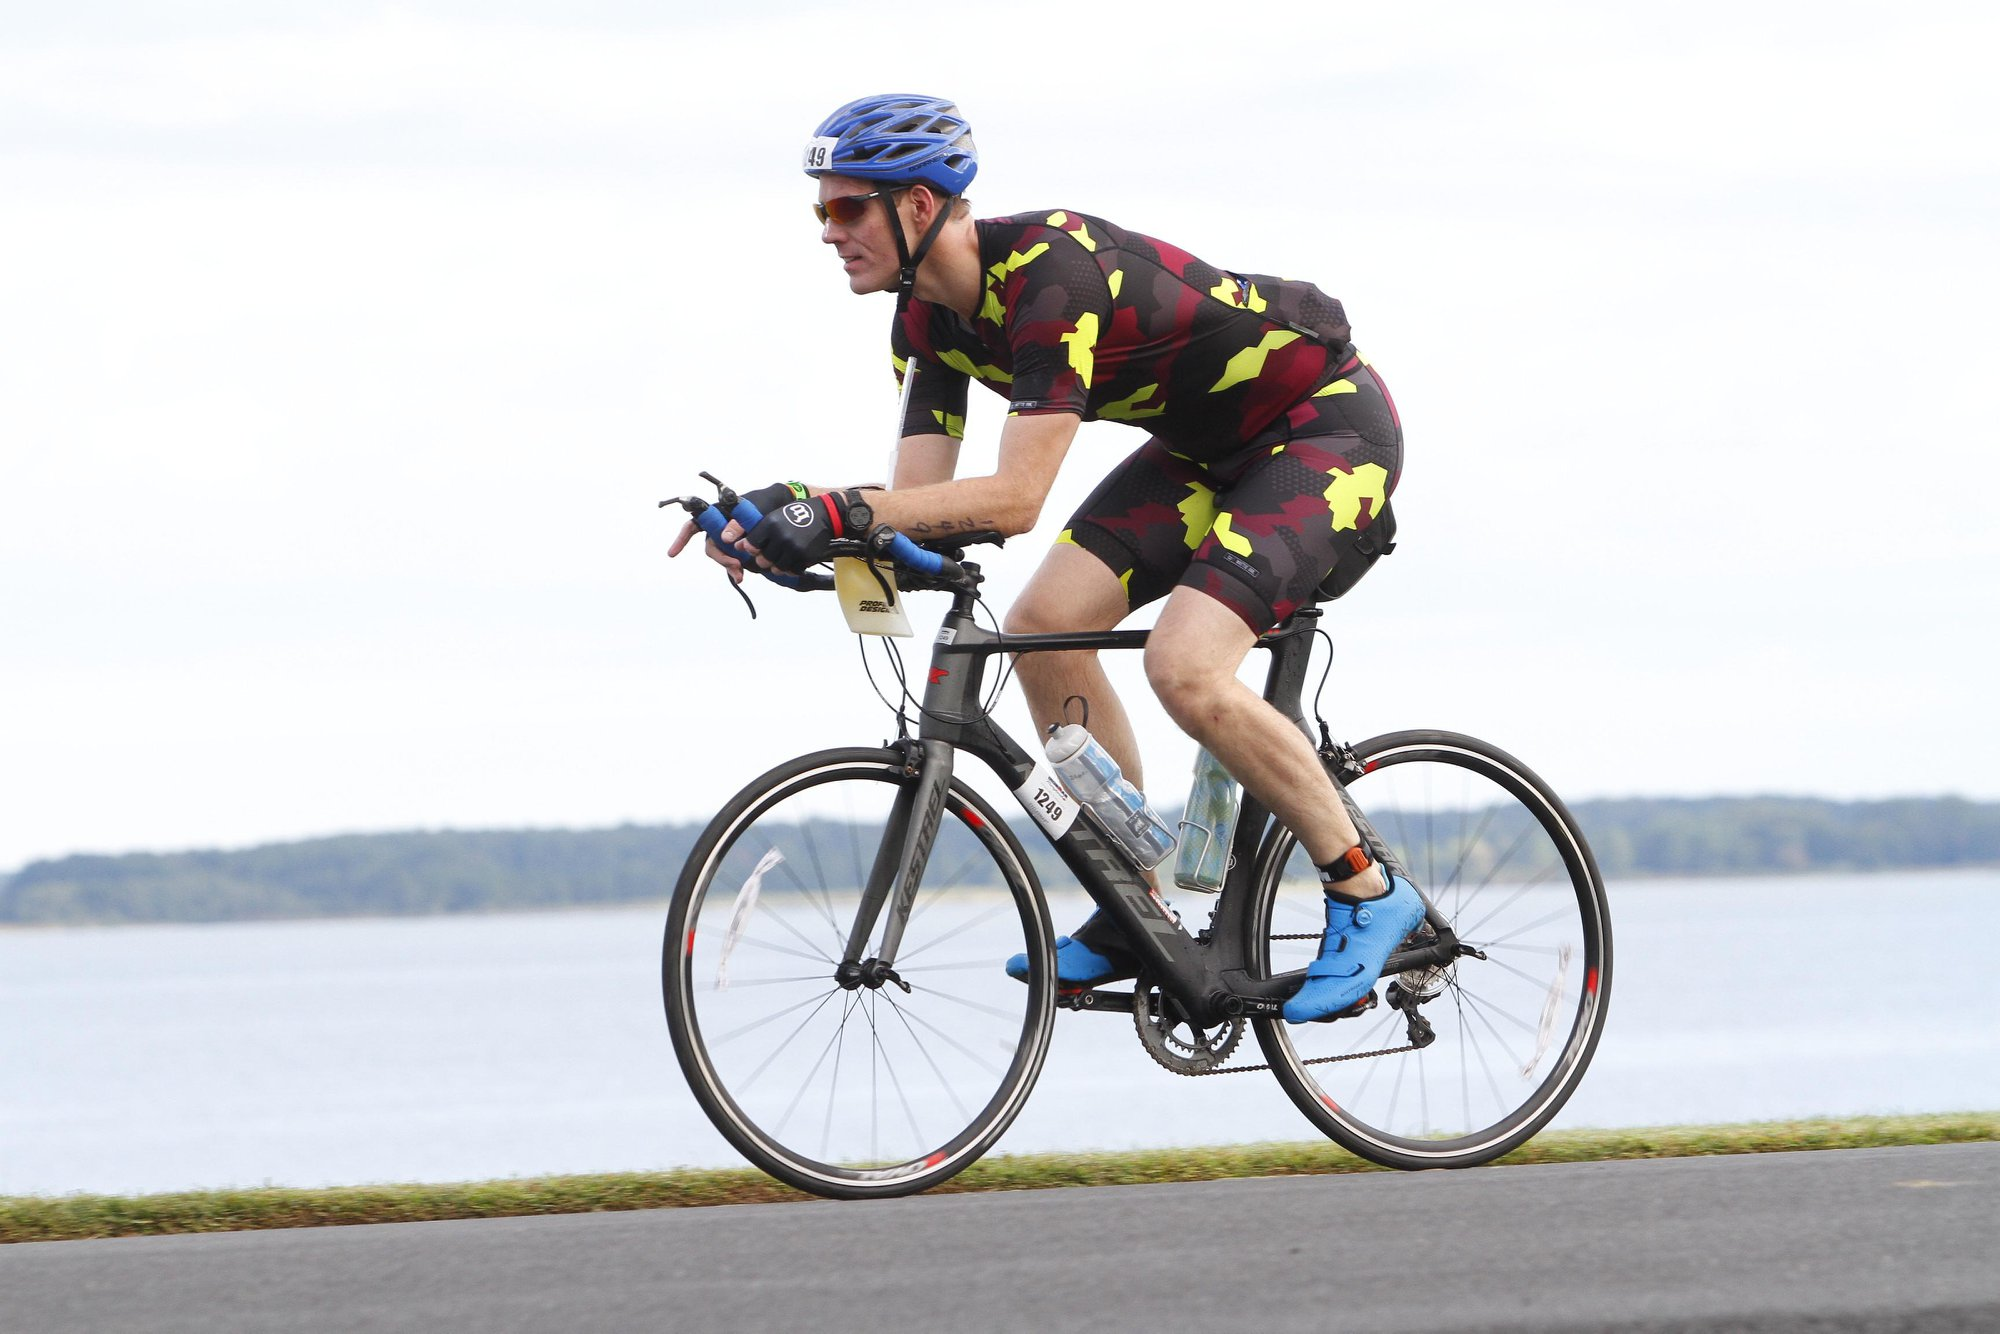 Coach_Terry_Wilson_Pursuit_of_The_Perfect_Race_IRONMAN_Maryland_Justin_Vos_Race_Recap_Review_5.jpg